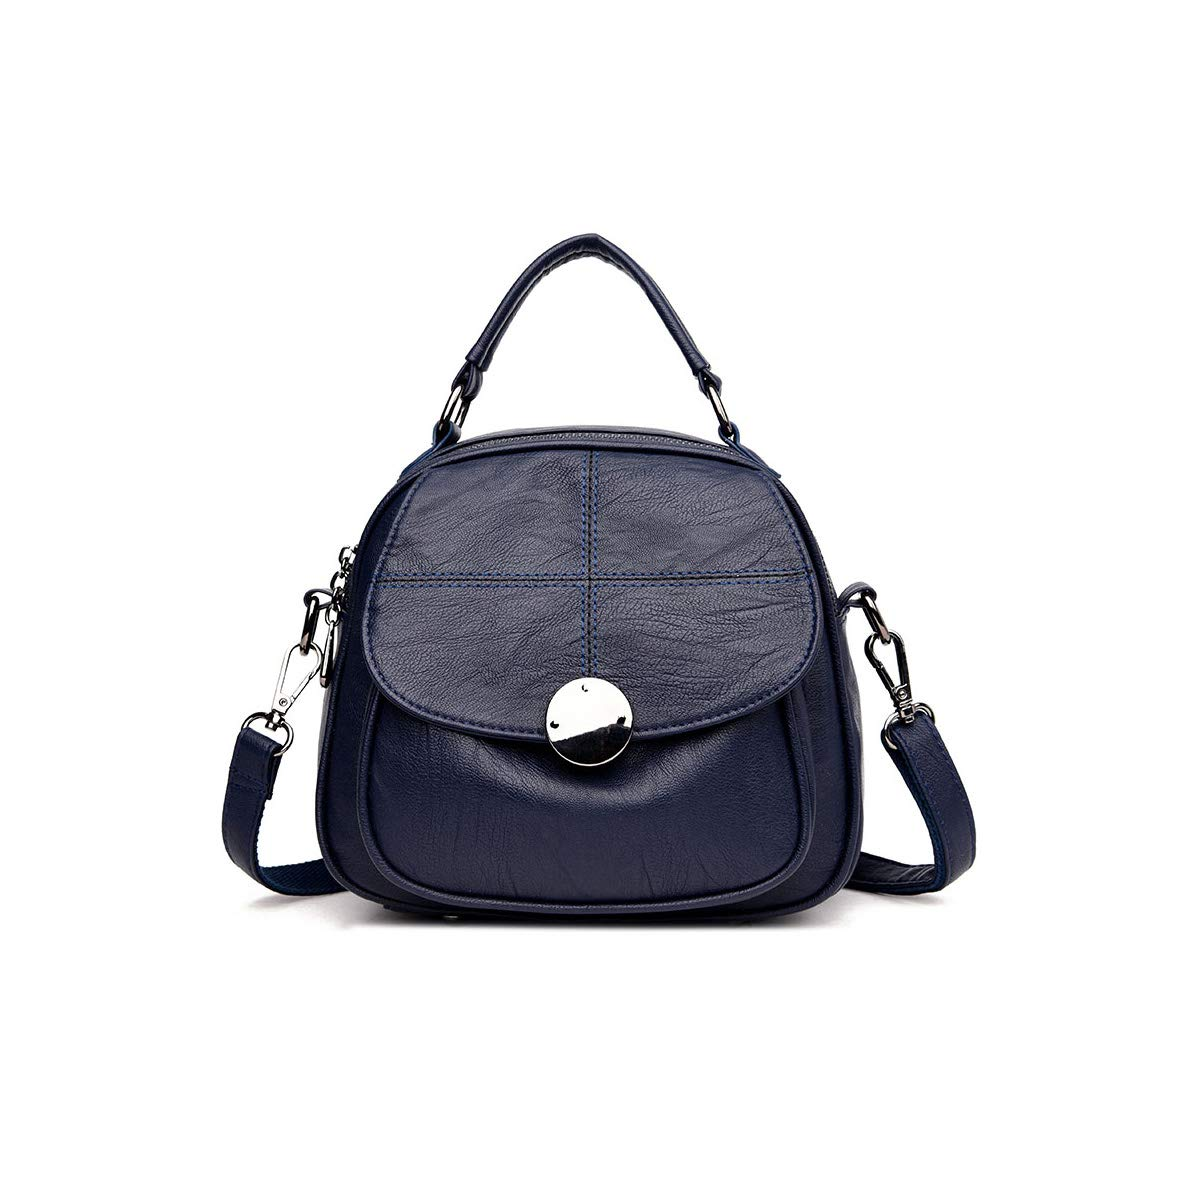 Vintage Mini. Haoyushangmao Girls Multi-Purpose Backpack for Daily Travel//Outdoor//Travel//School//Work//Fashion//Leisure Color : Blue, Size : 24cm21cm13cm PU Leather Five Colors